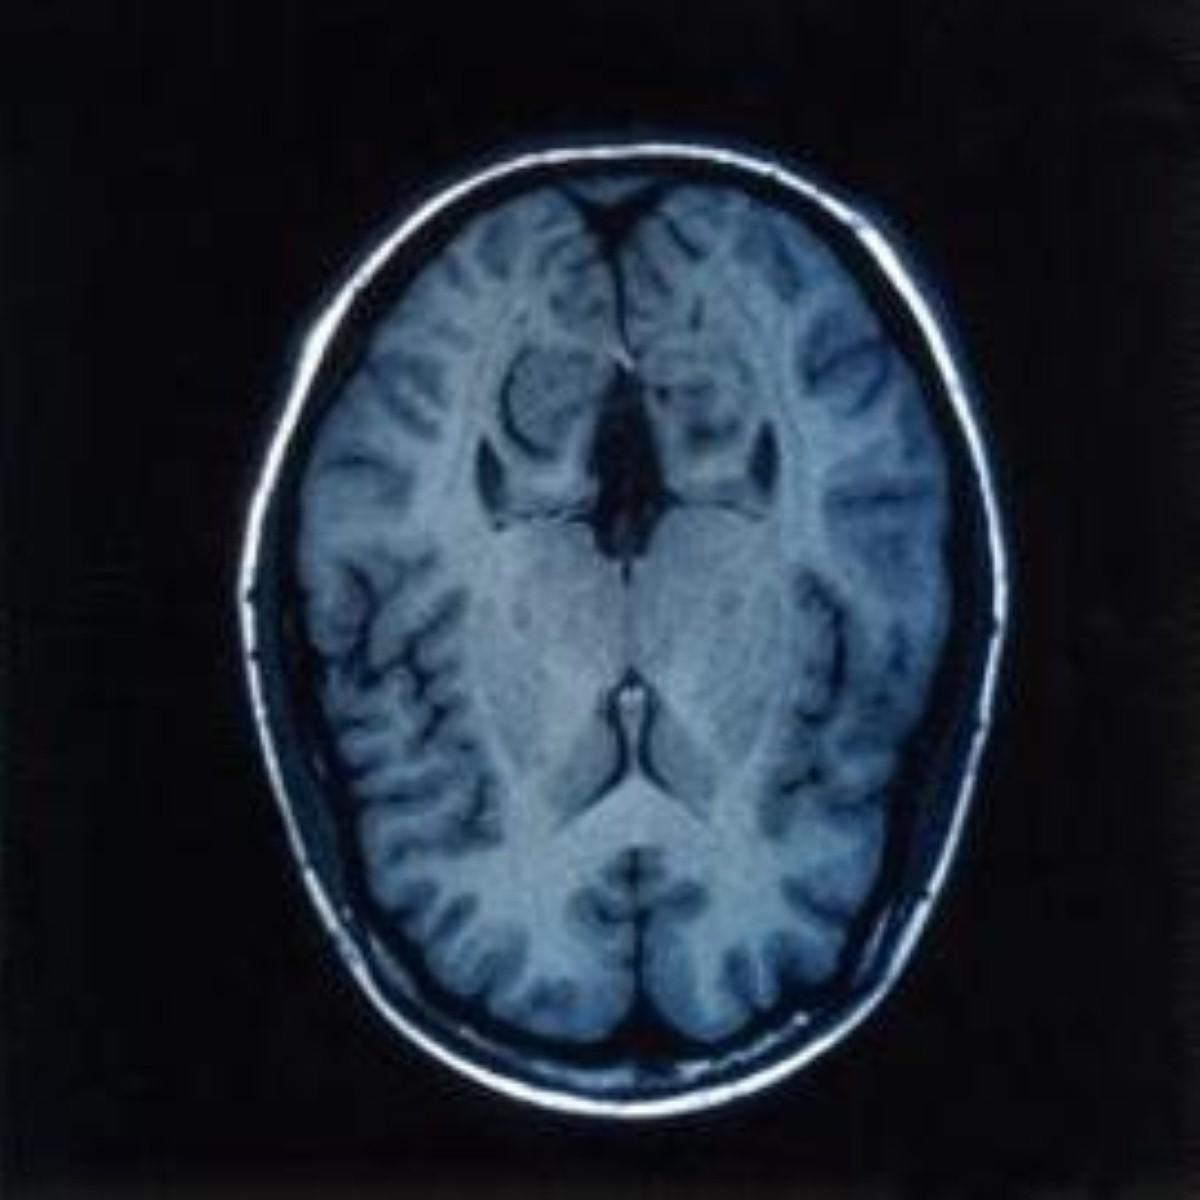 Alzheimer's 'due to low clearance of plaques'